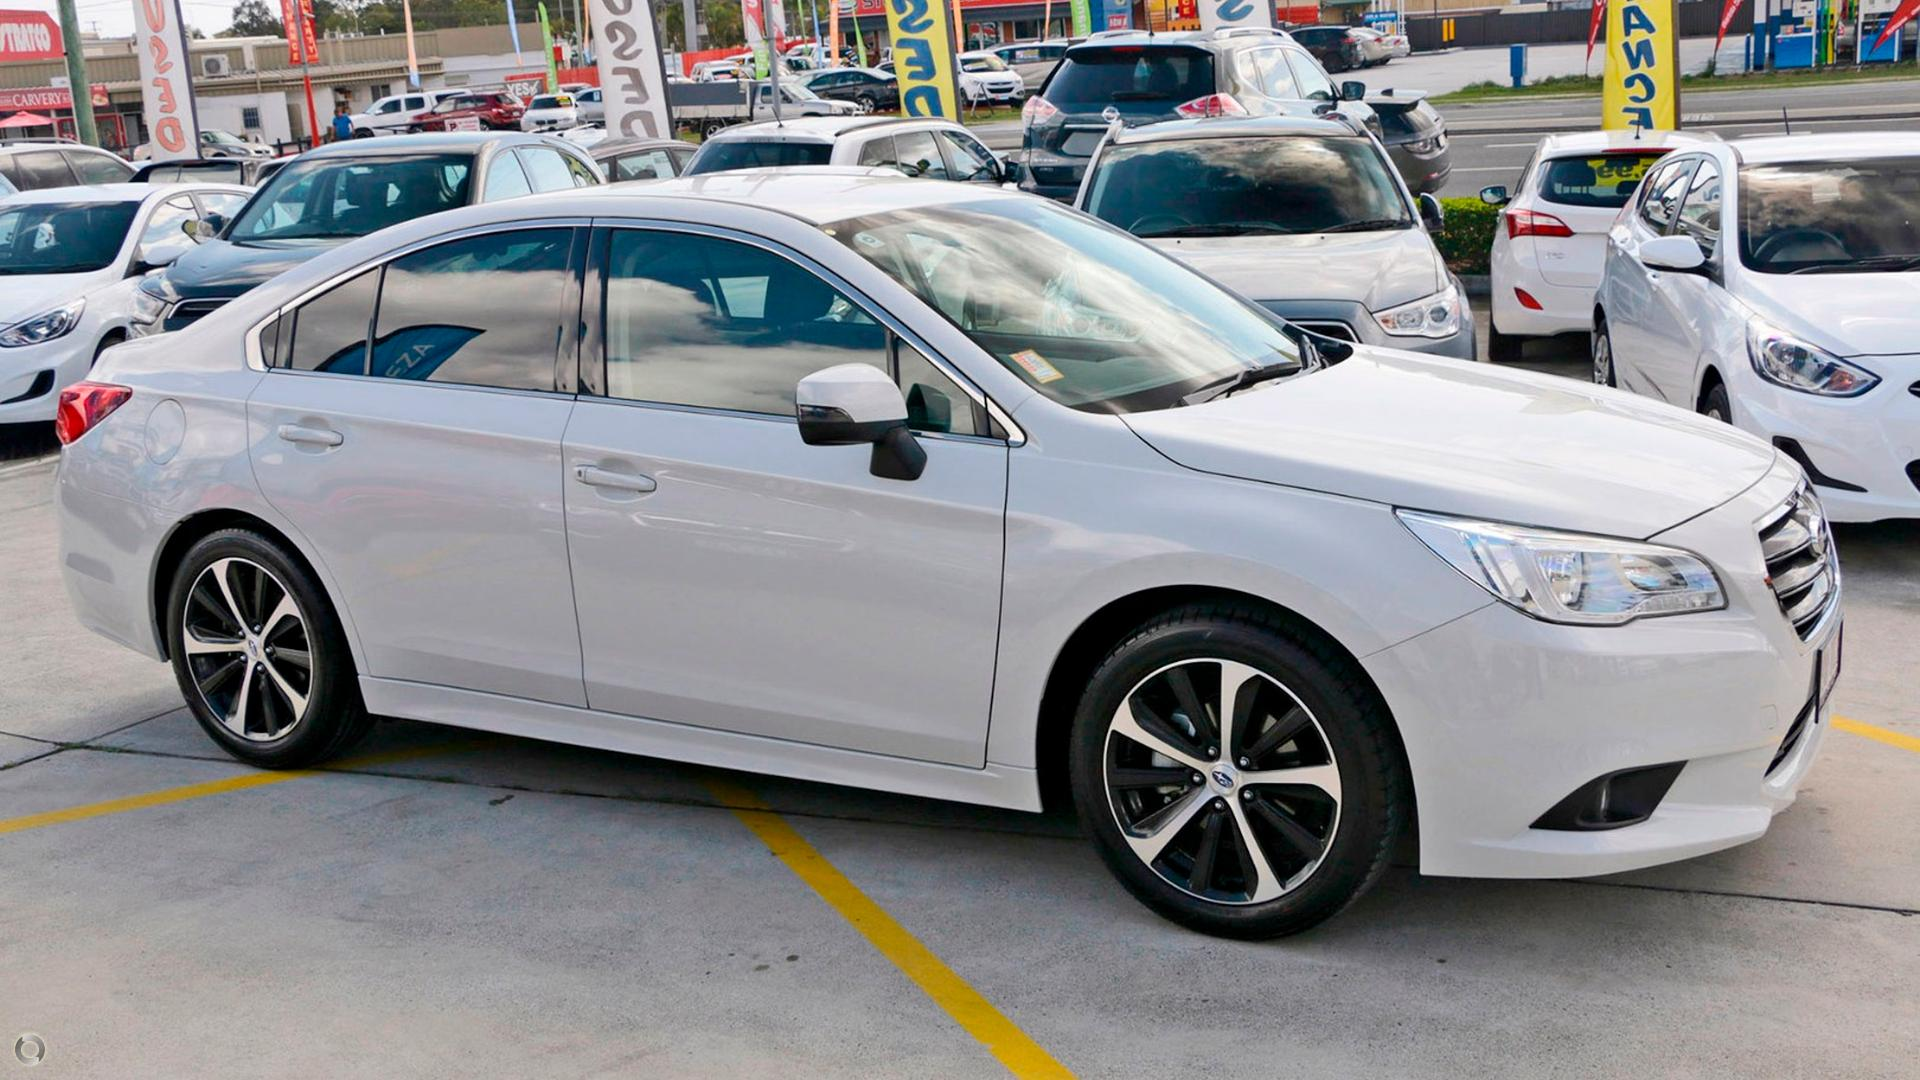 2017 Subaru Liberty 2.5i Fleet Edition 6GEN